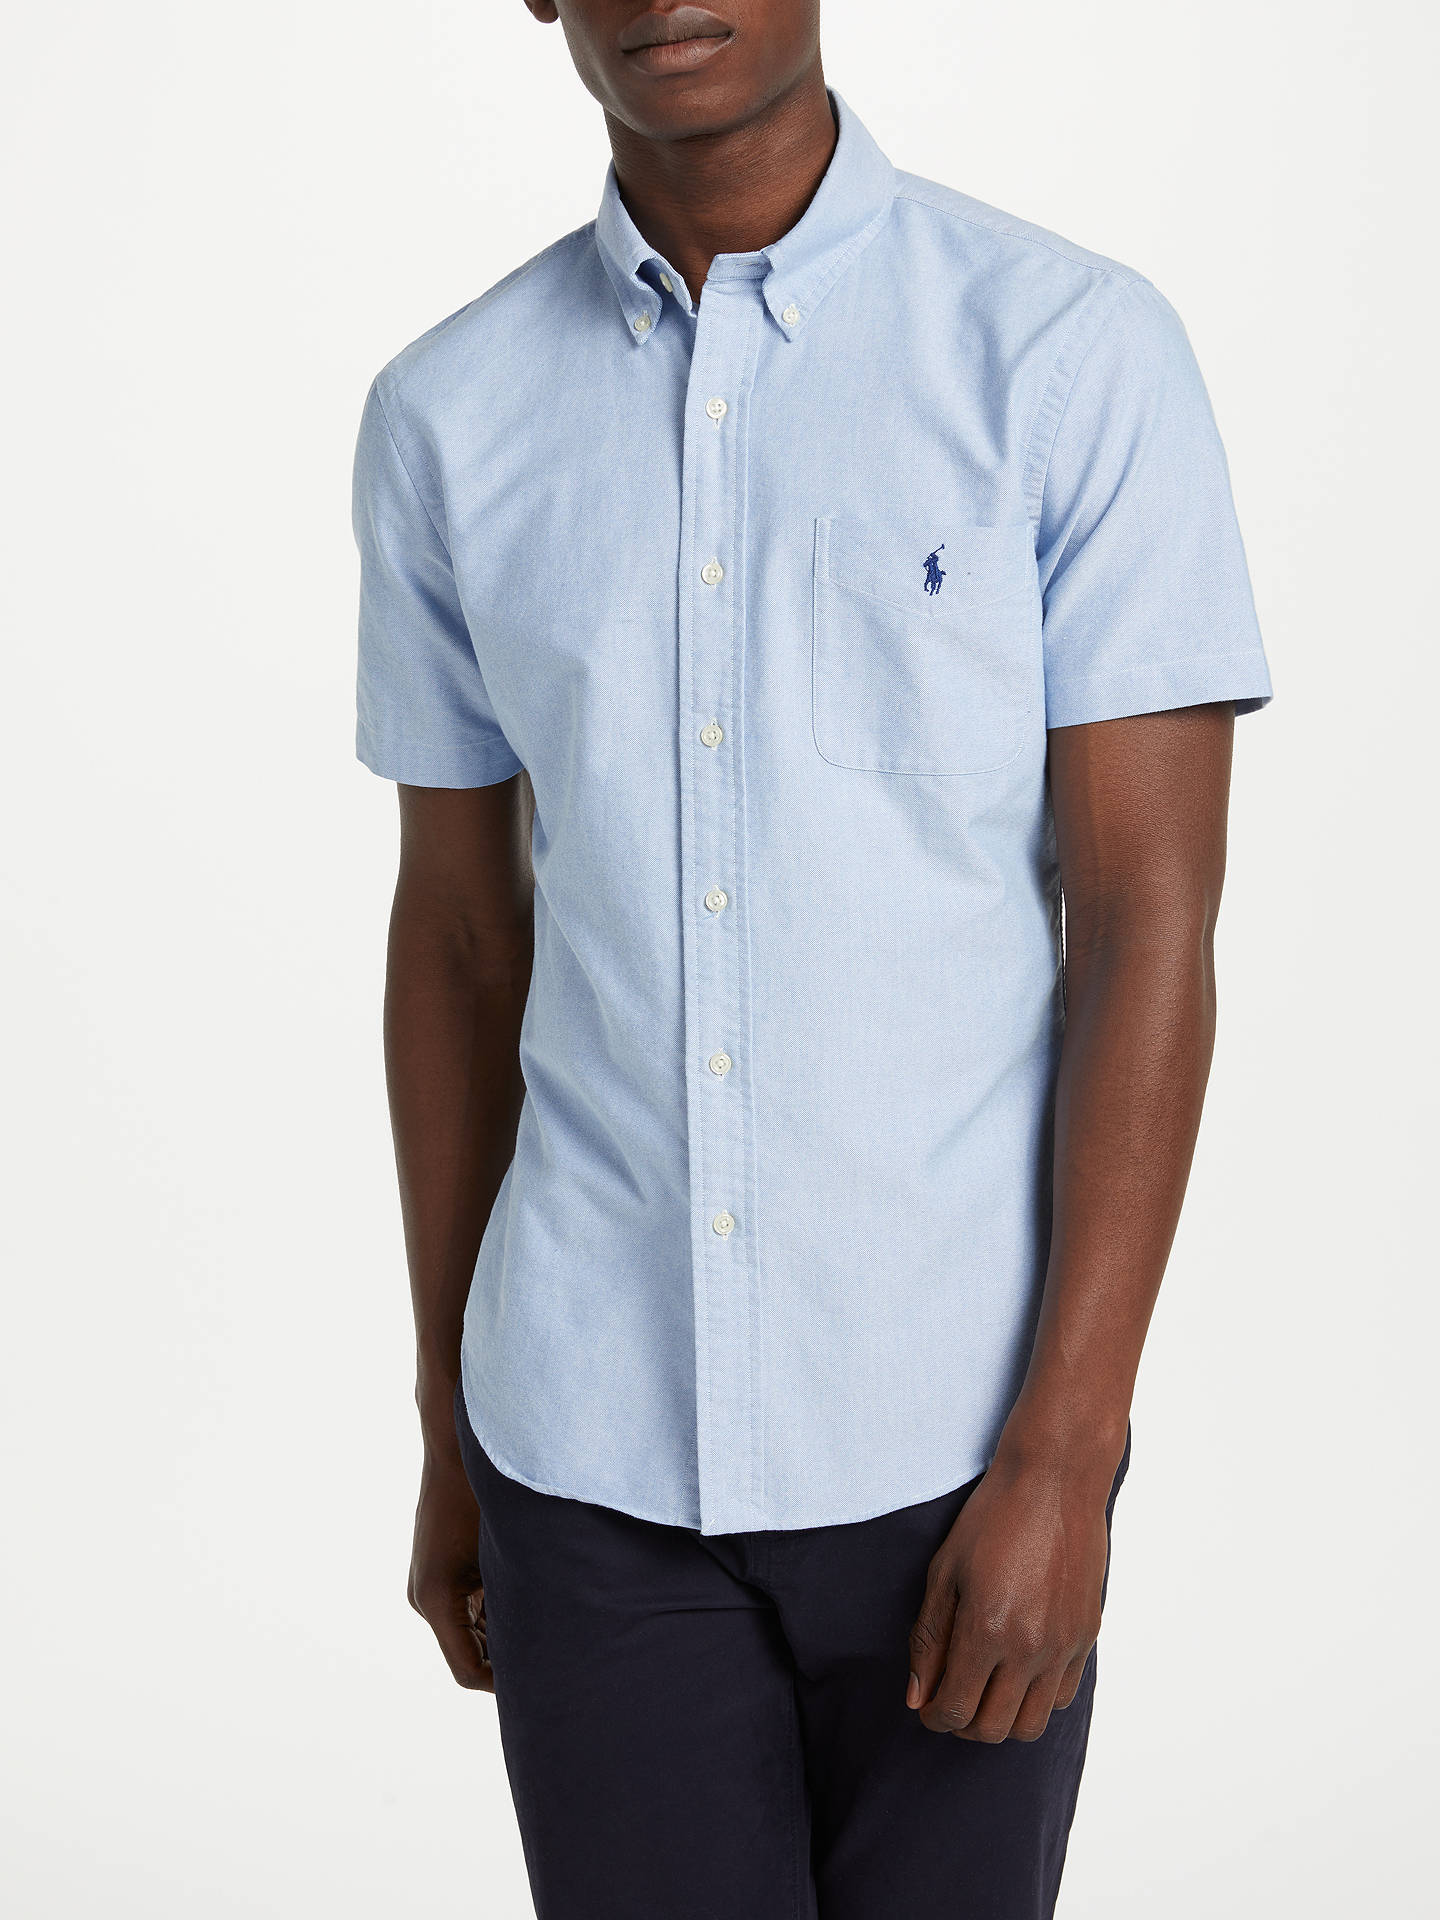 5a9c2184bd Polo Ralph Lauren Short Sleeve Slim Oxford Shirt at John Lewis ...